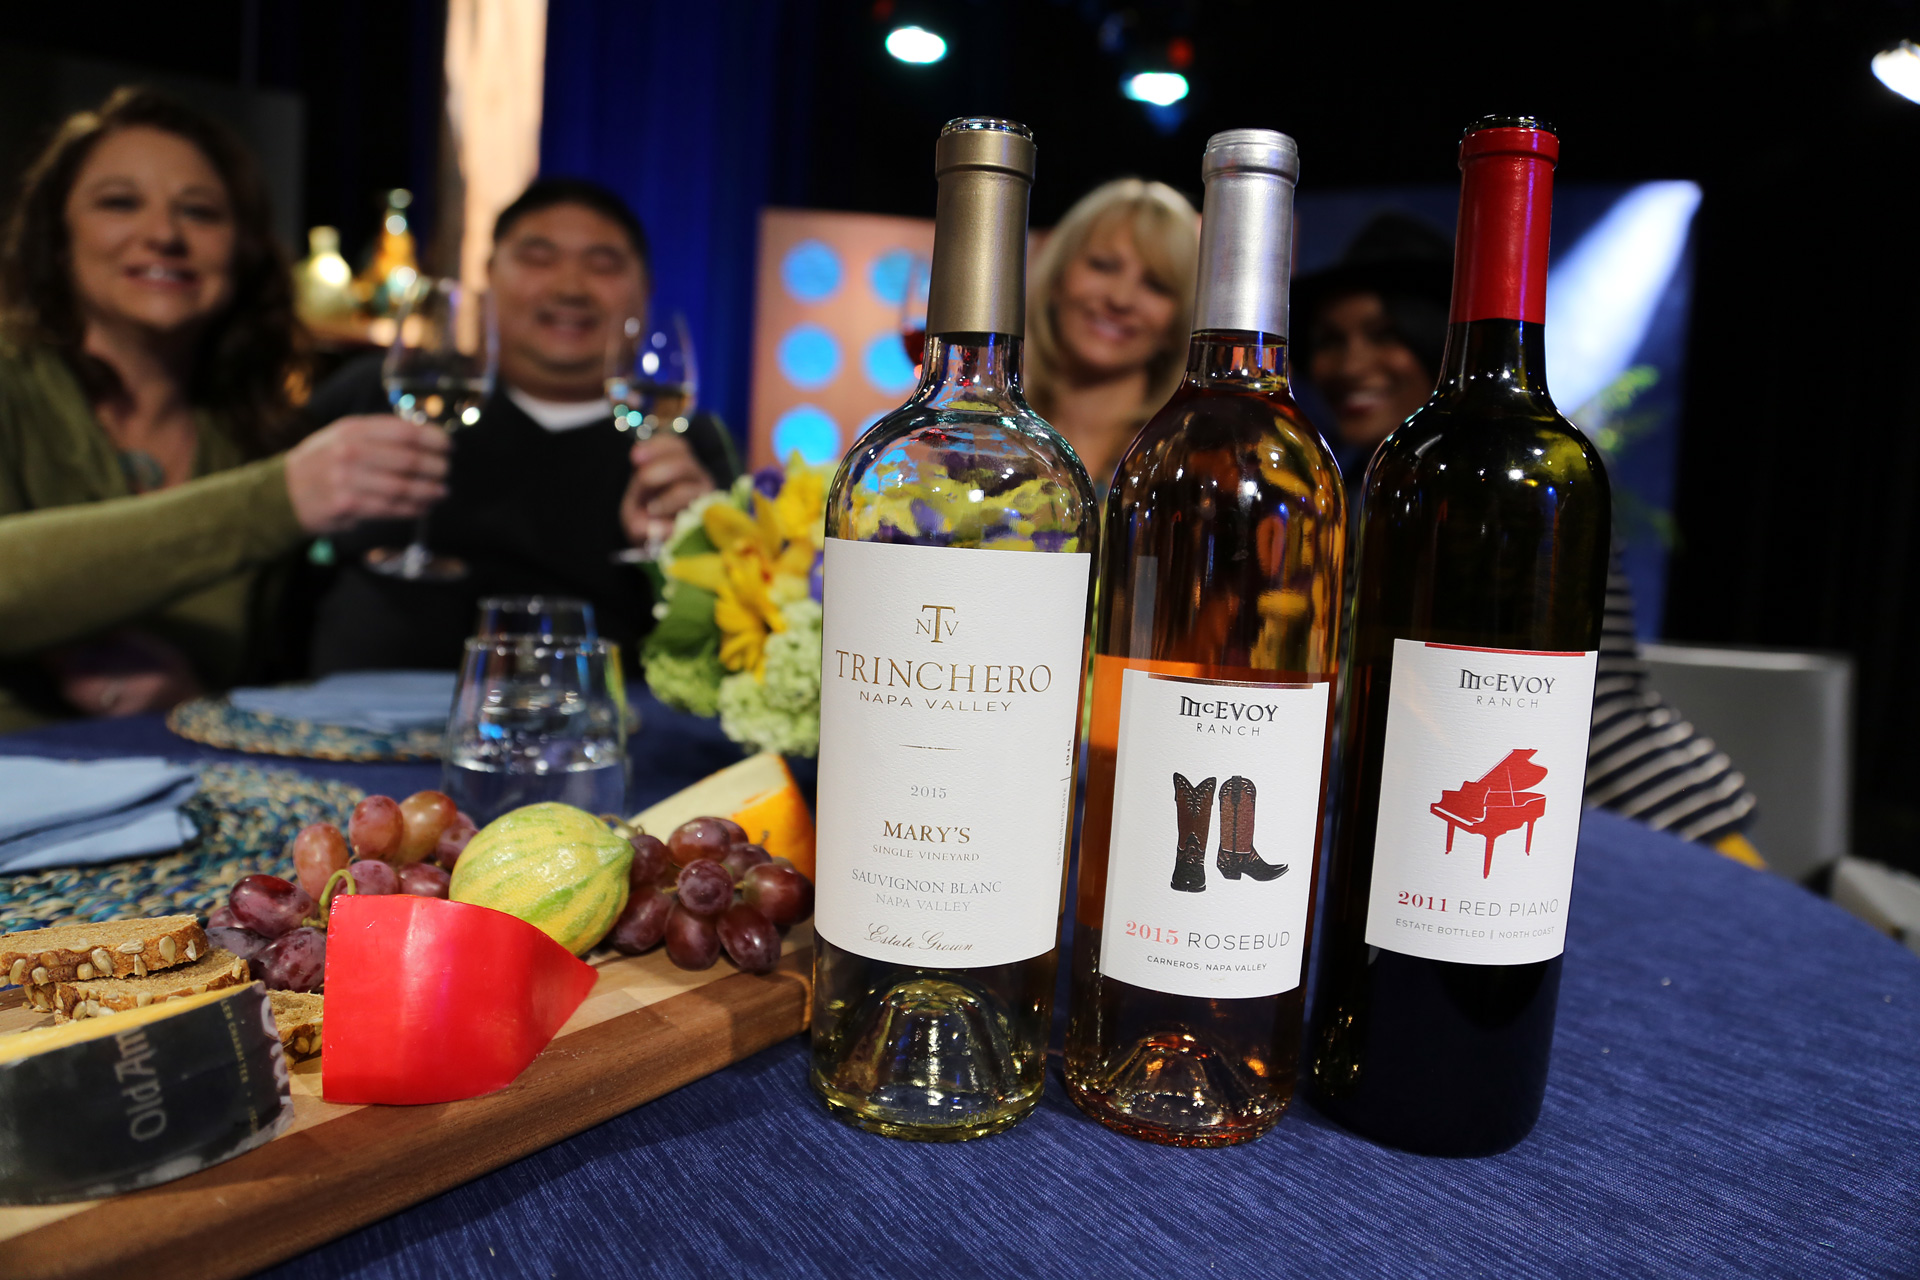 Wines that guests drank on the set of the fifteenth episode of season 11.